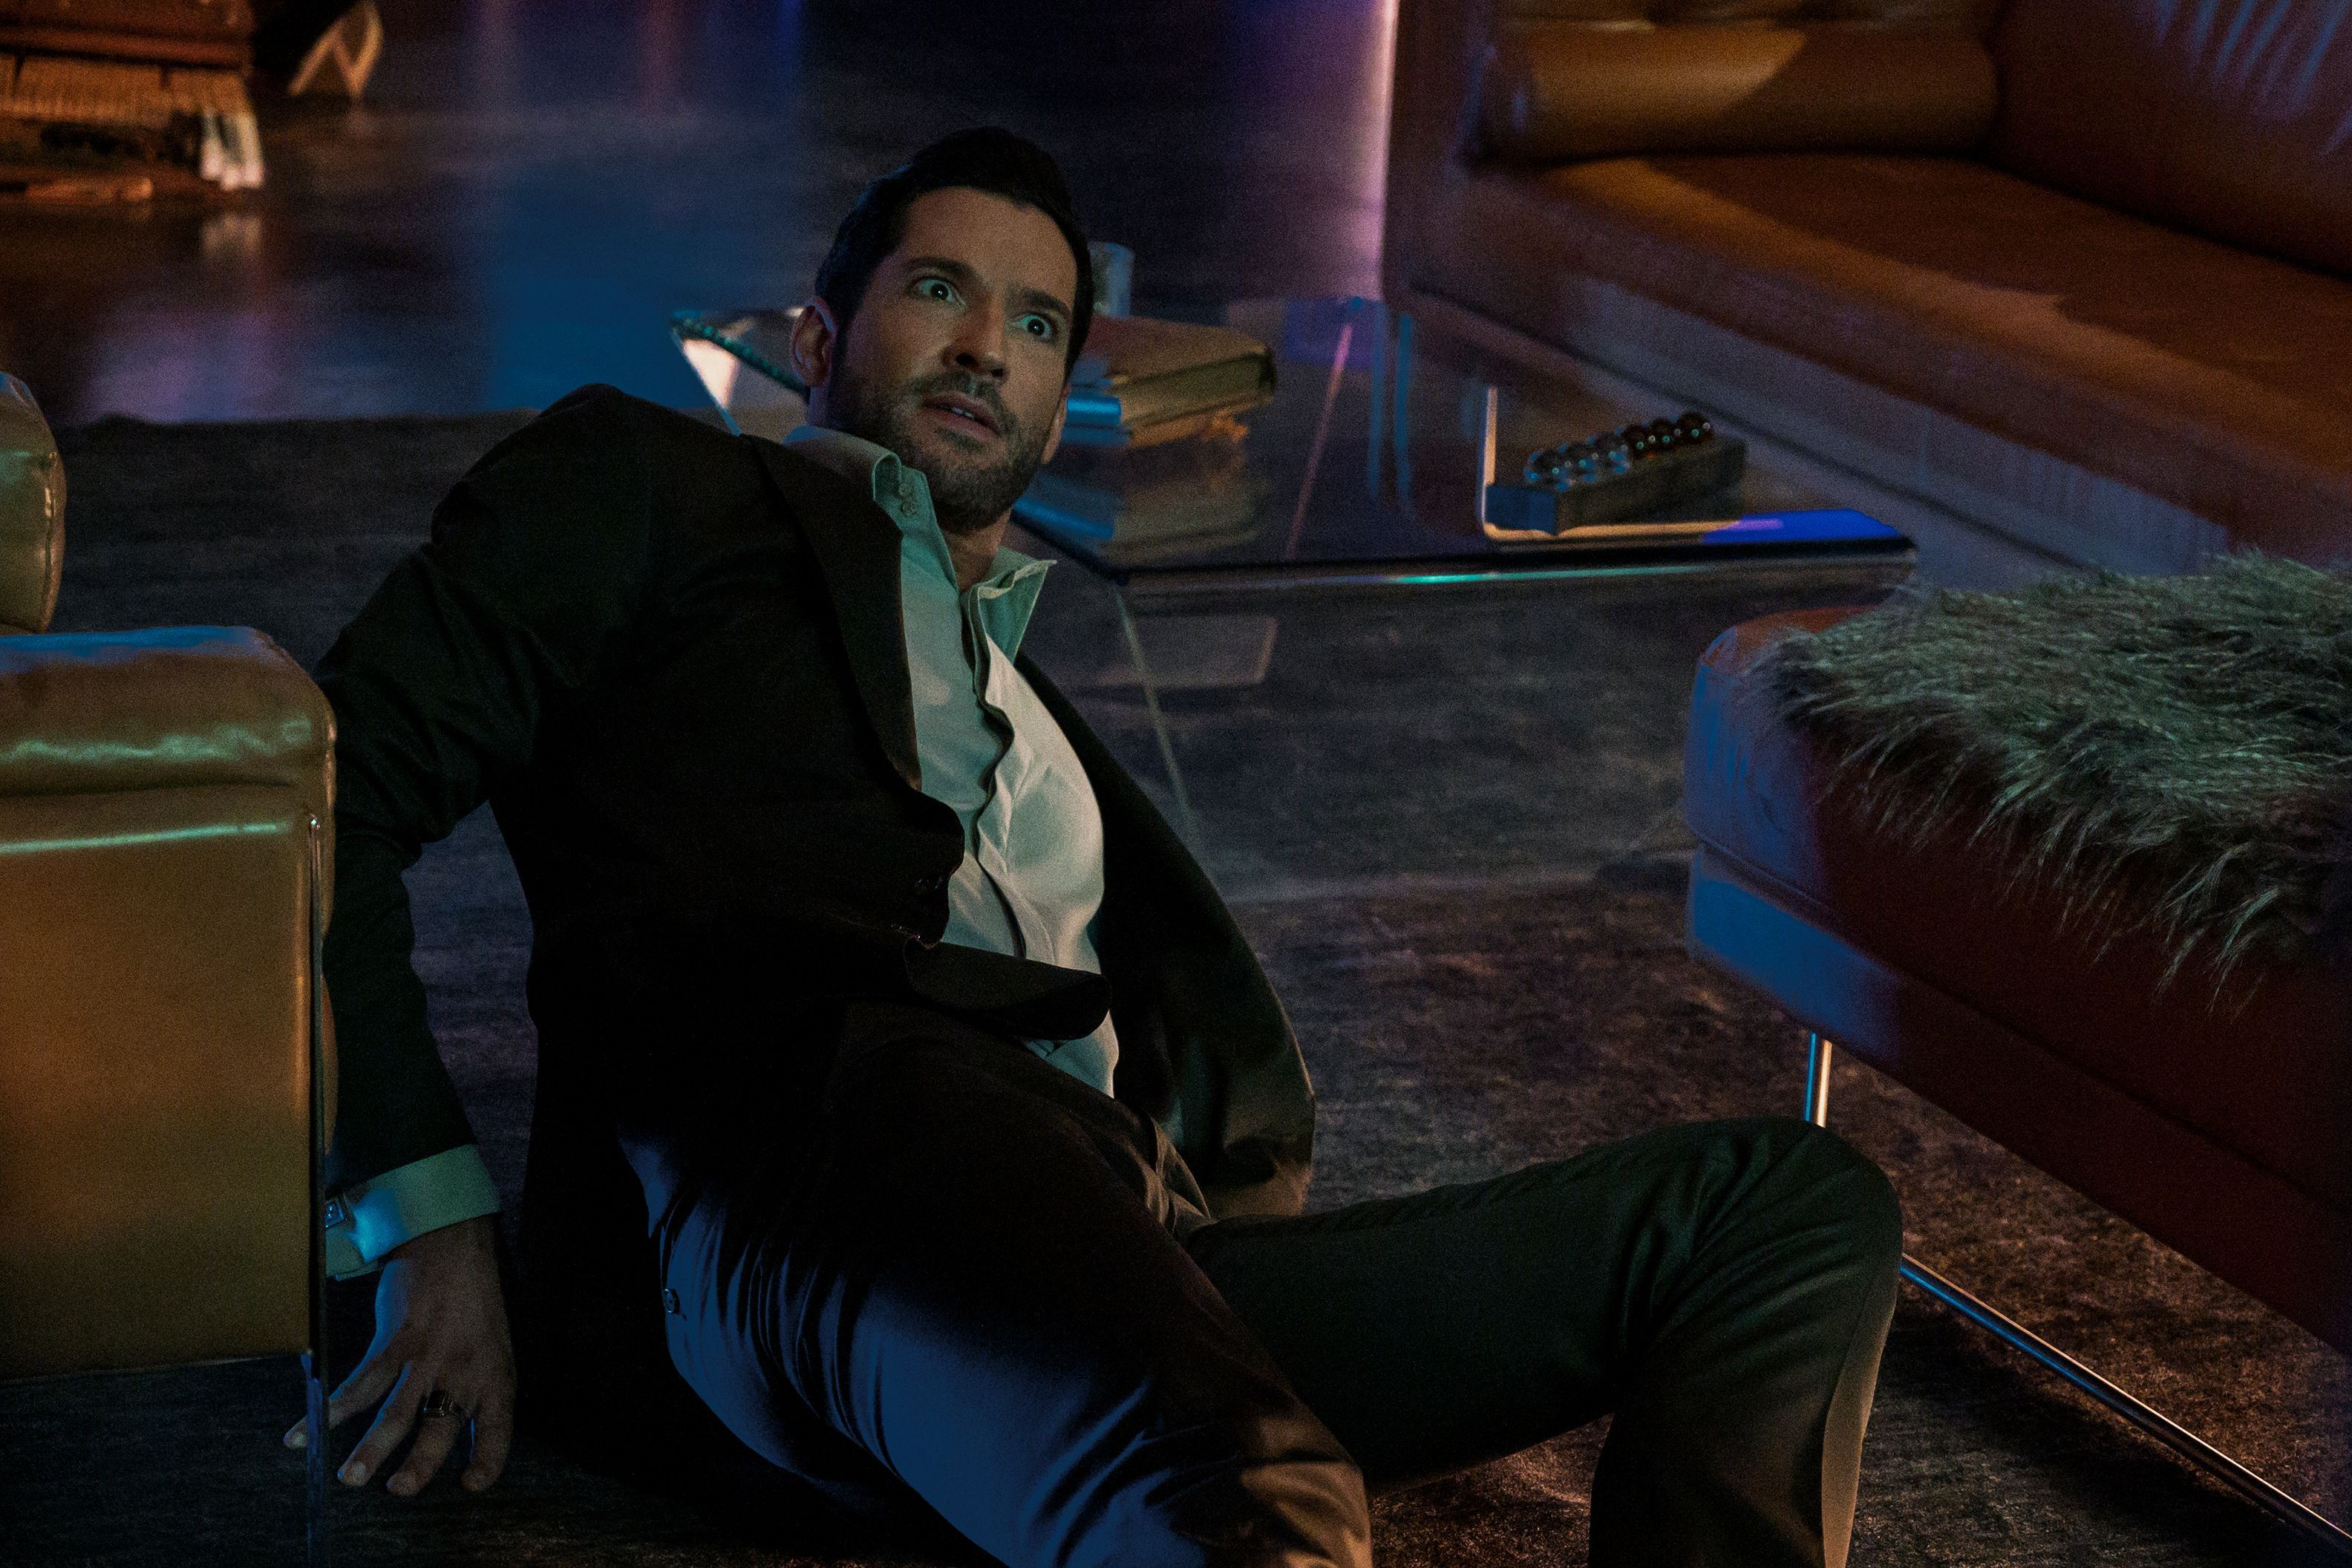 Lucifer Season 5 Part 1 Ending Explained What S Next For Lucifer And Chloe